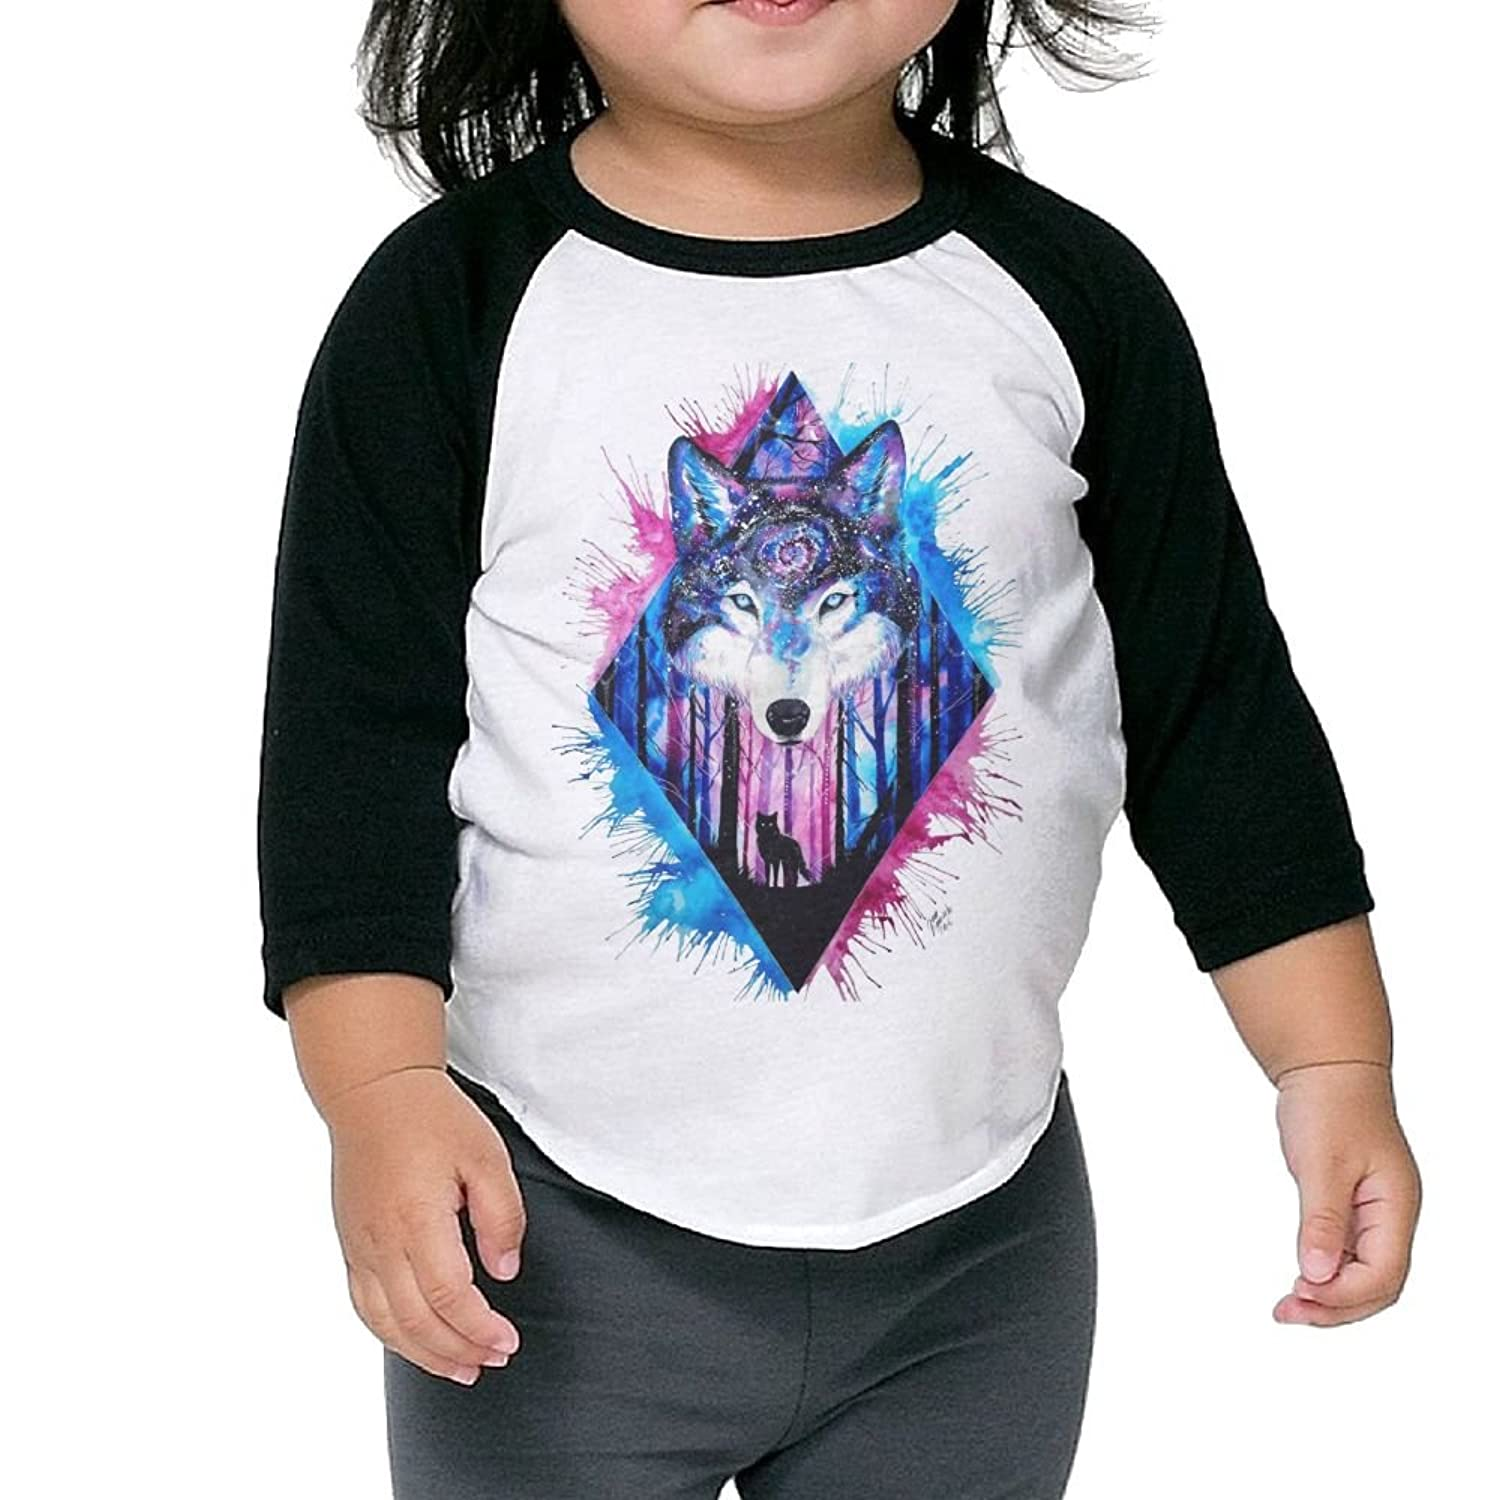 CHENLY Unisex Kid's Sleeves Soft Watercolor Wolf Cotton 3/4 Sleeves T-Shirt For children for sale